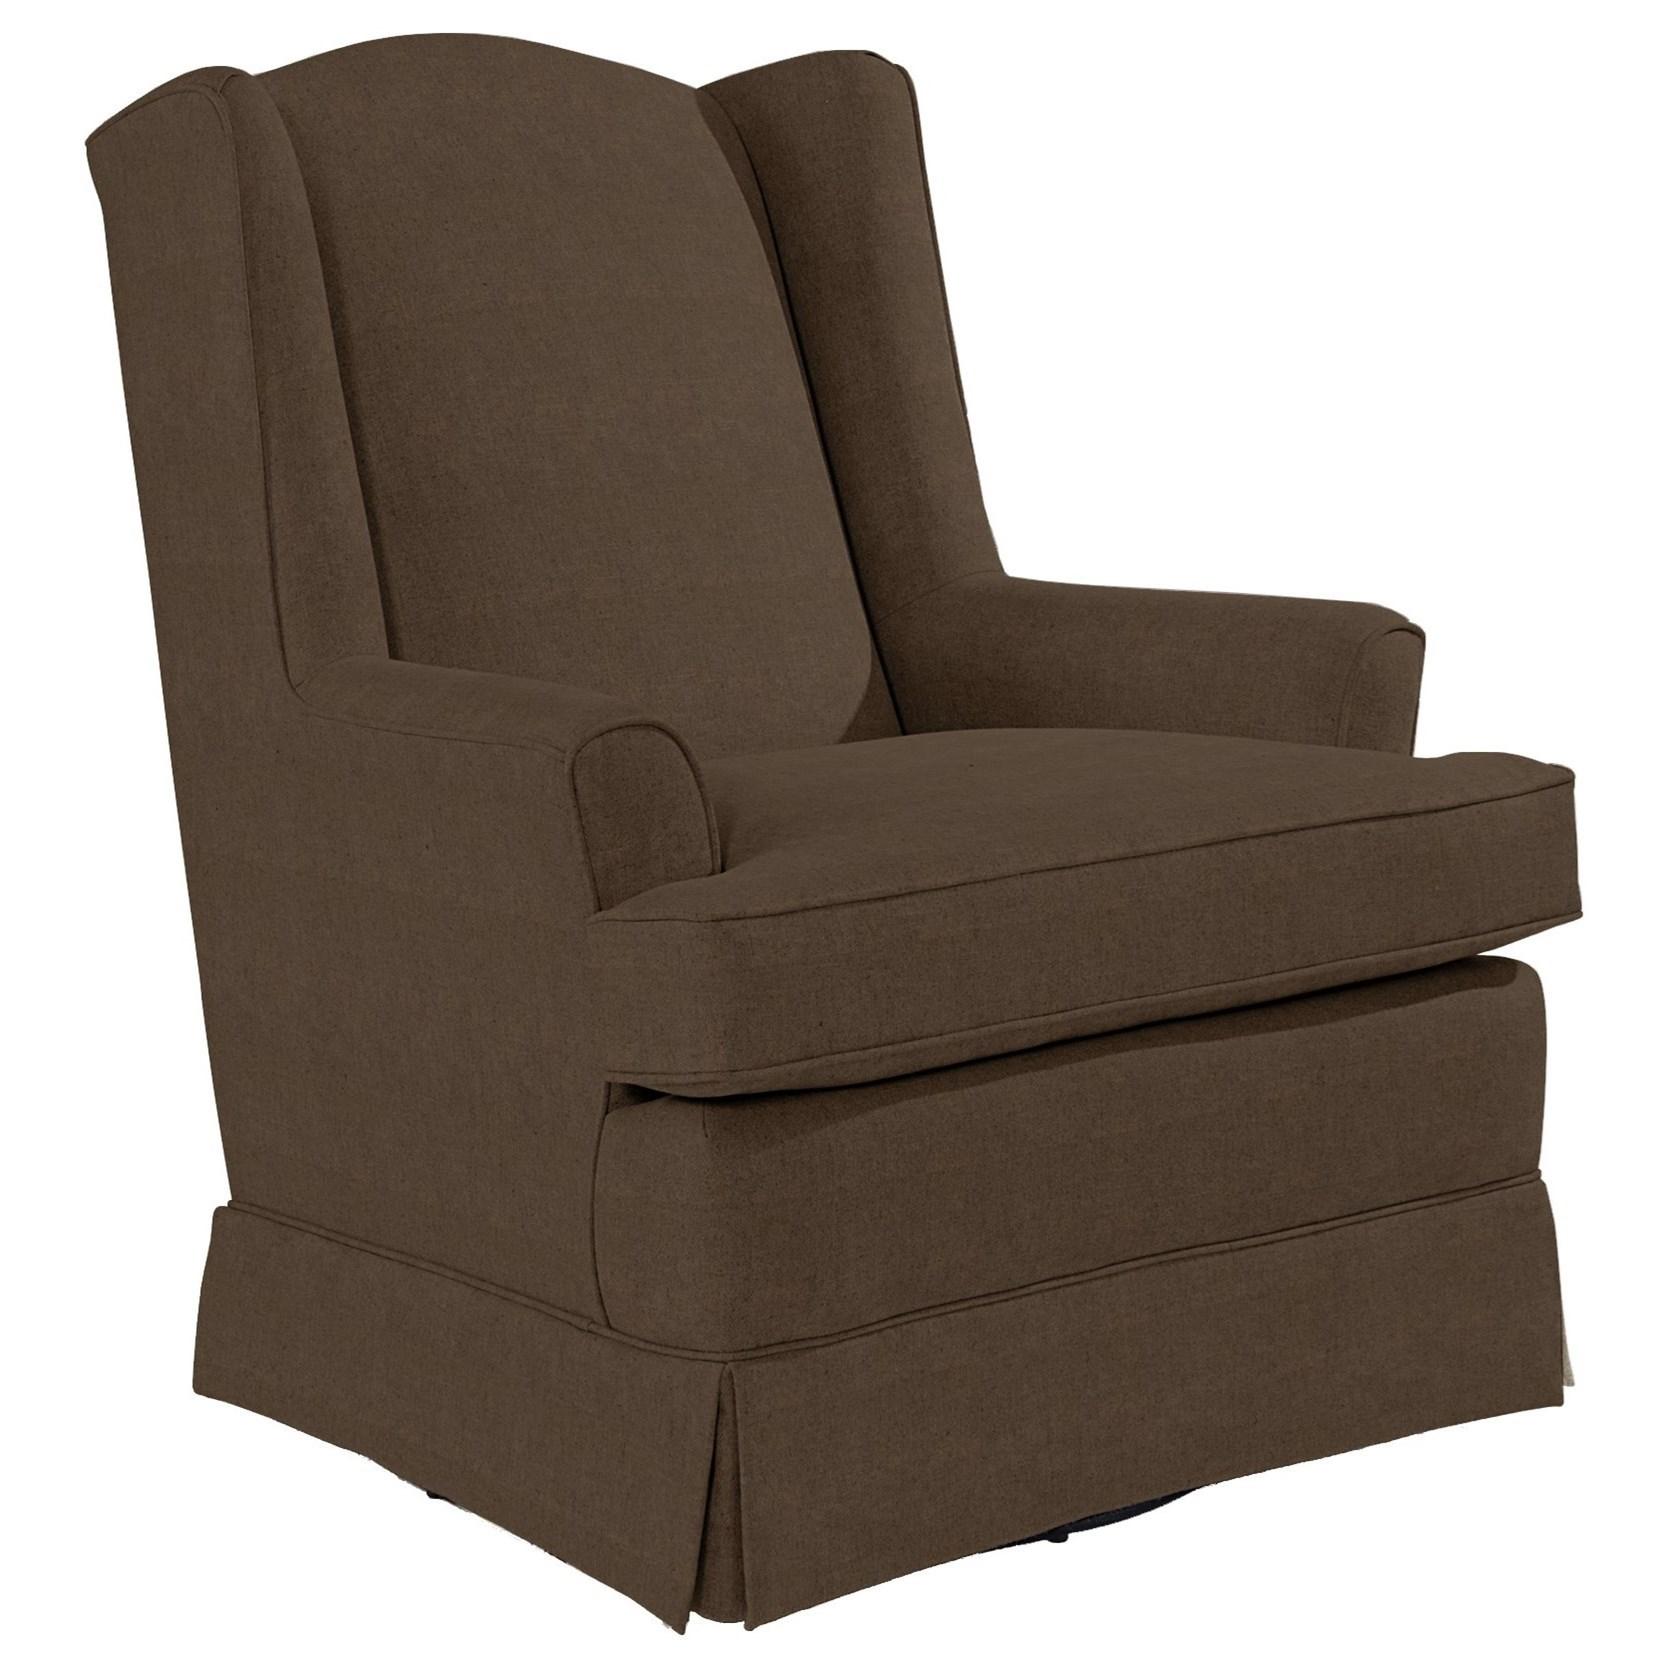 Swivel Glide Chairs Natasha Swivel Glider by Bravo Furniture at Bennett's Furniture and Mattresses